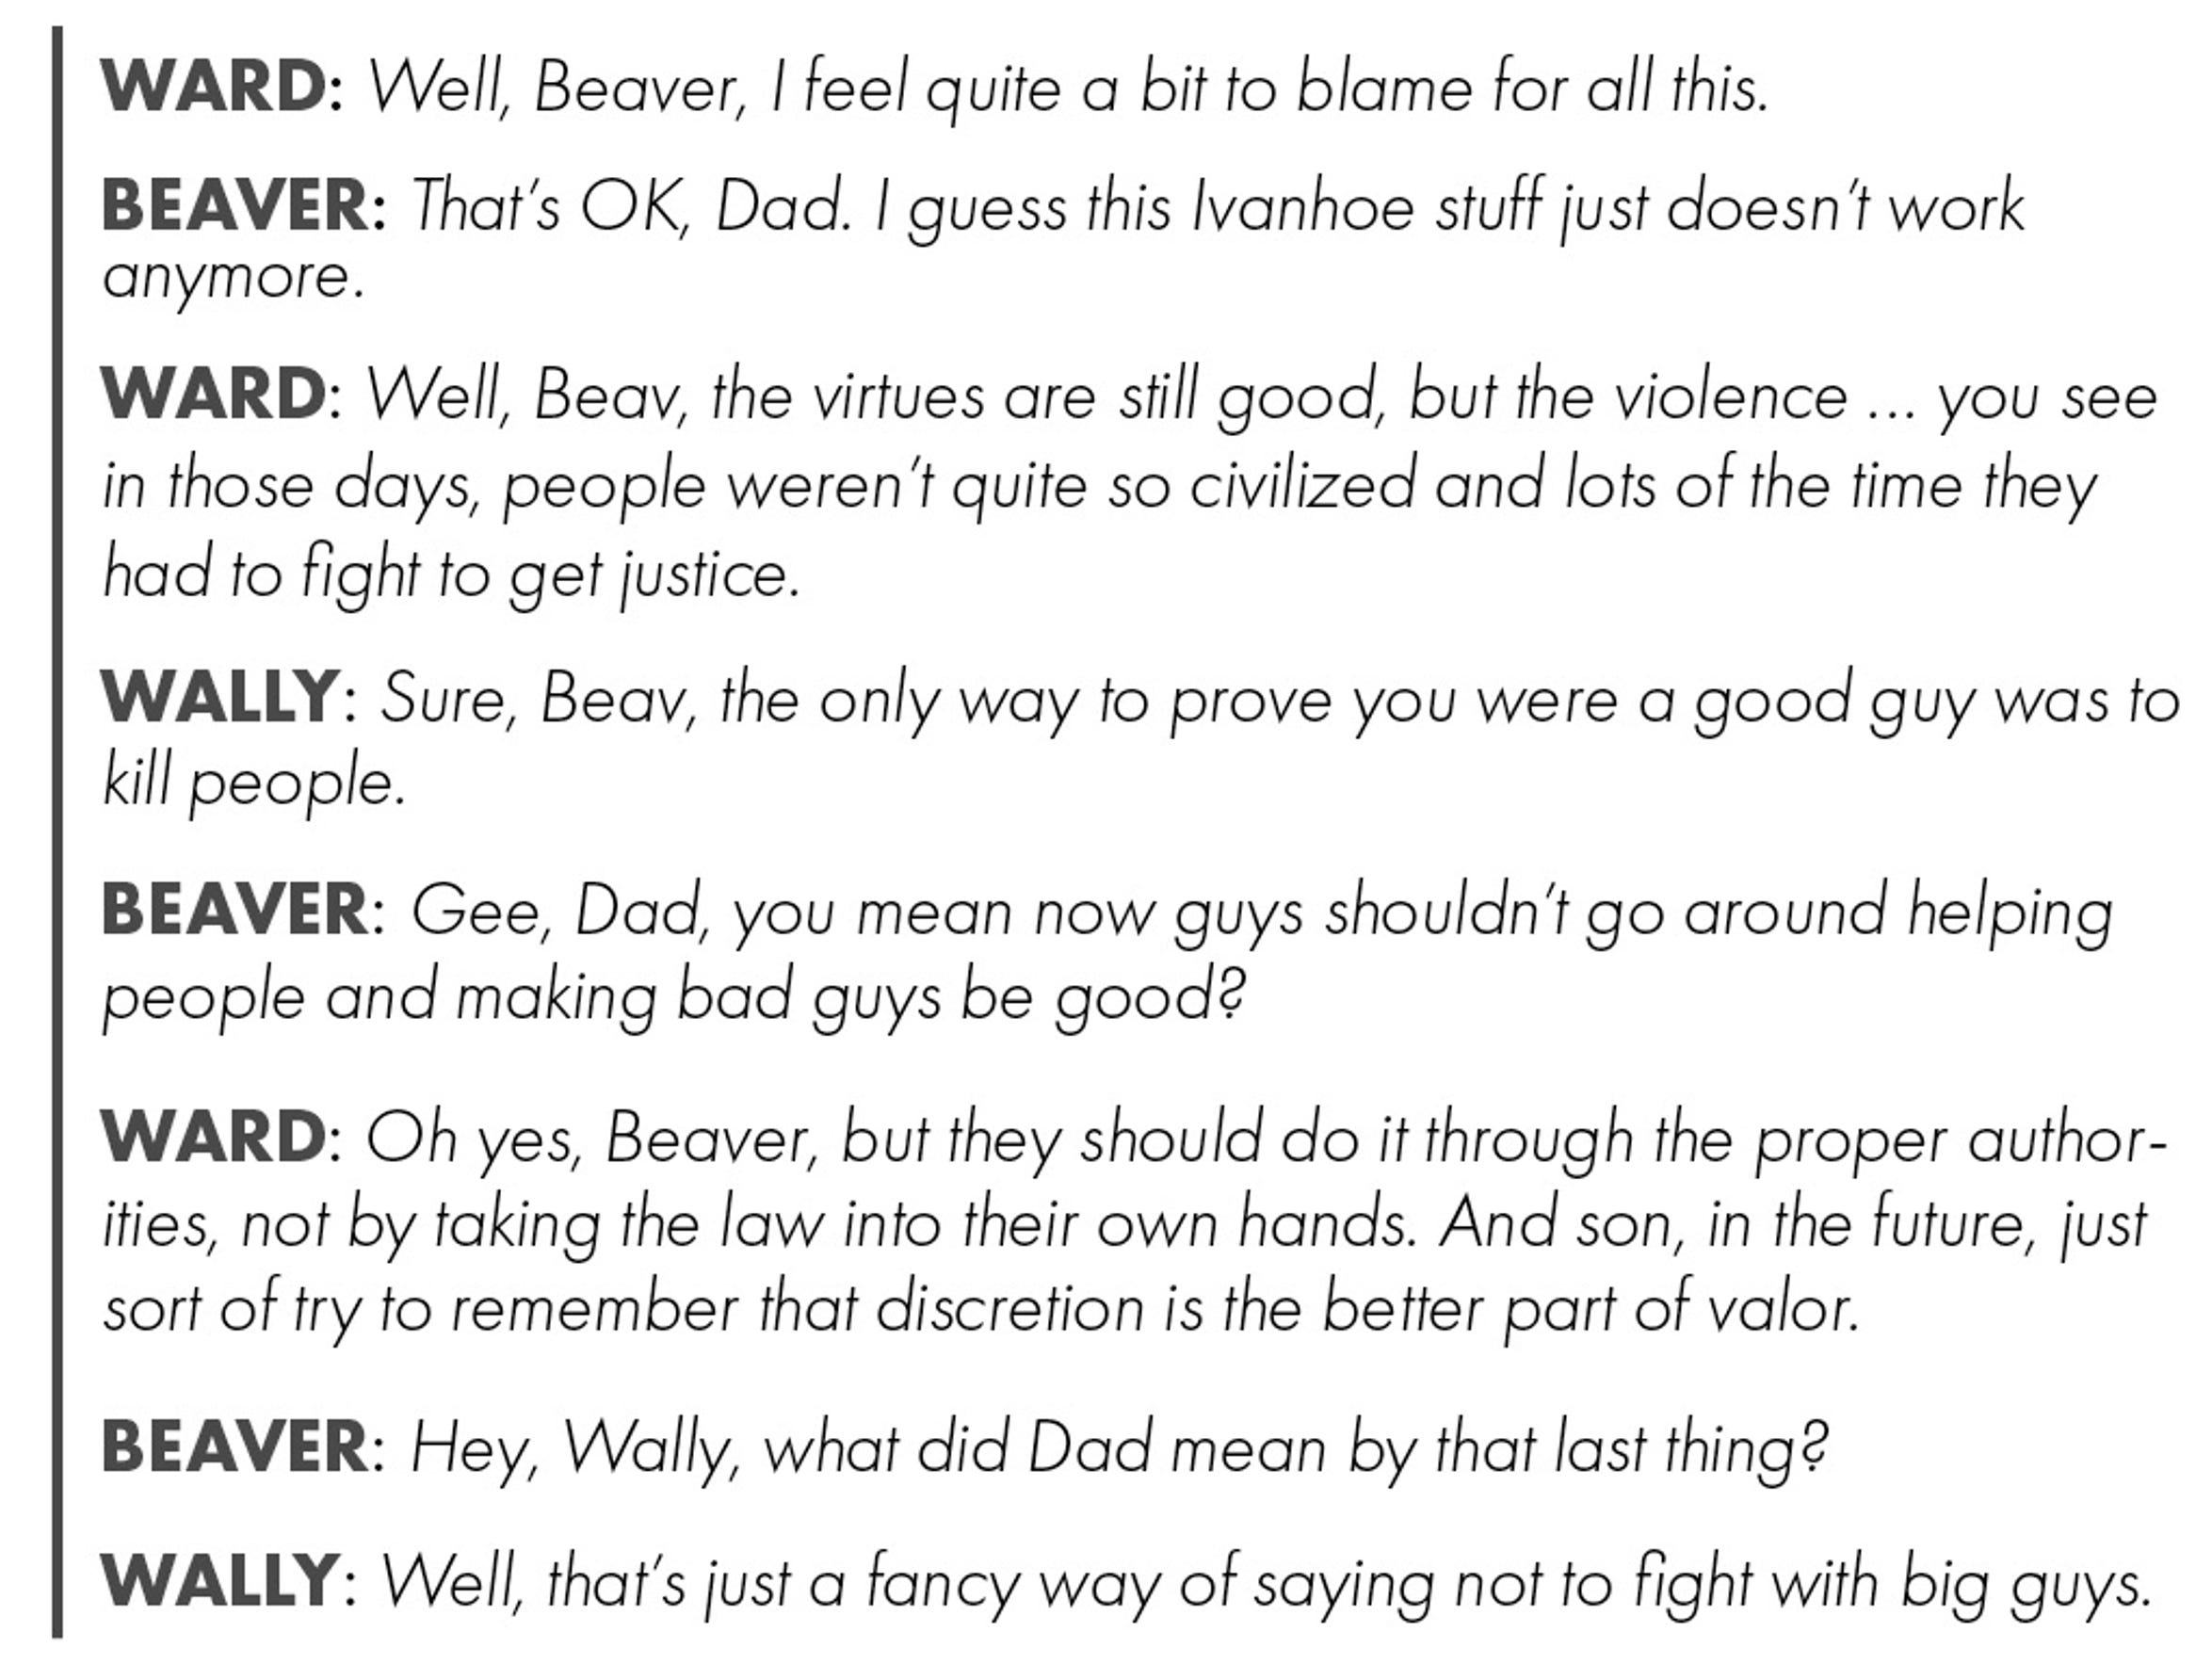 Dialogue from the iconic show, 'Leave It to Beaver,'